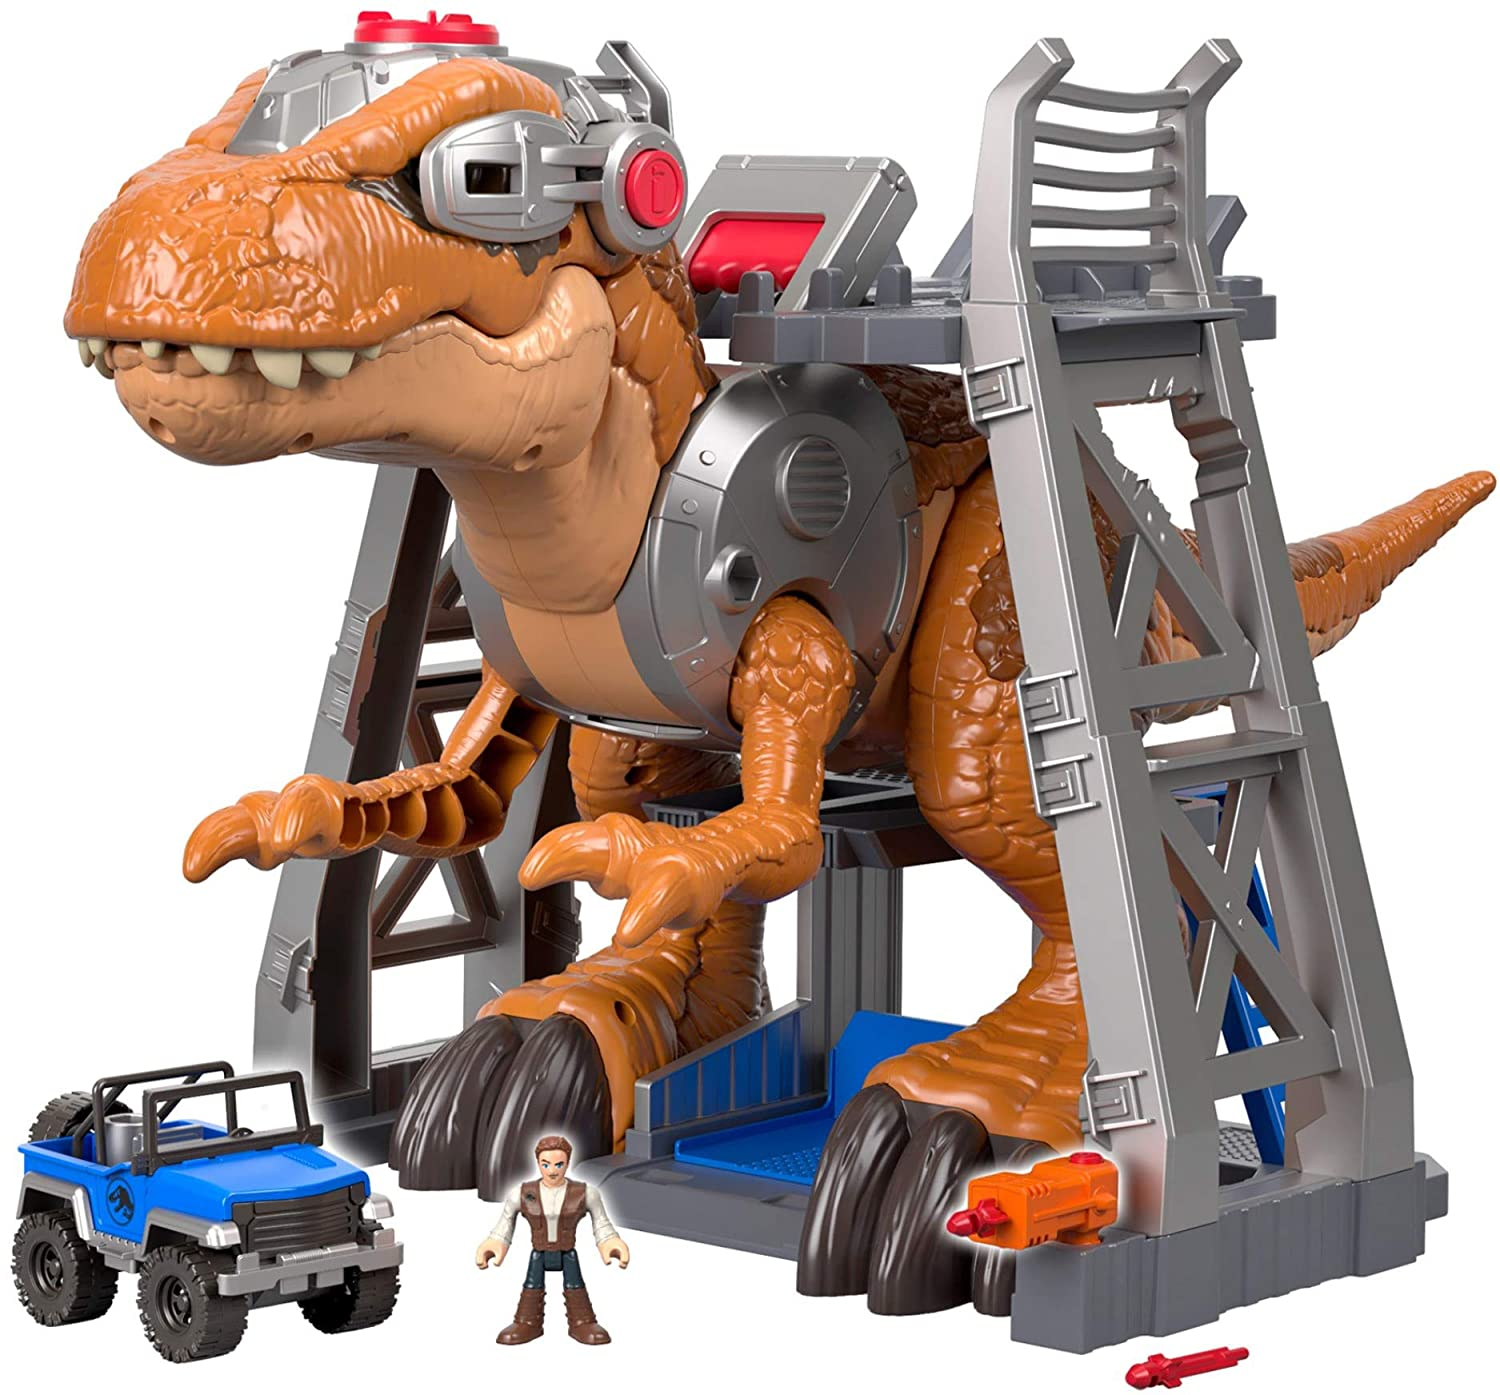 Fisher Price - Imaginext - Jurassic World Rex Mattel FMX85